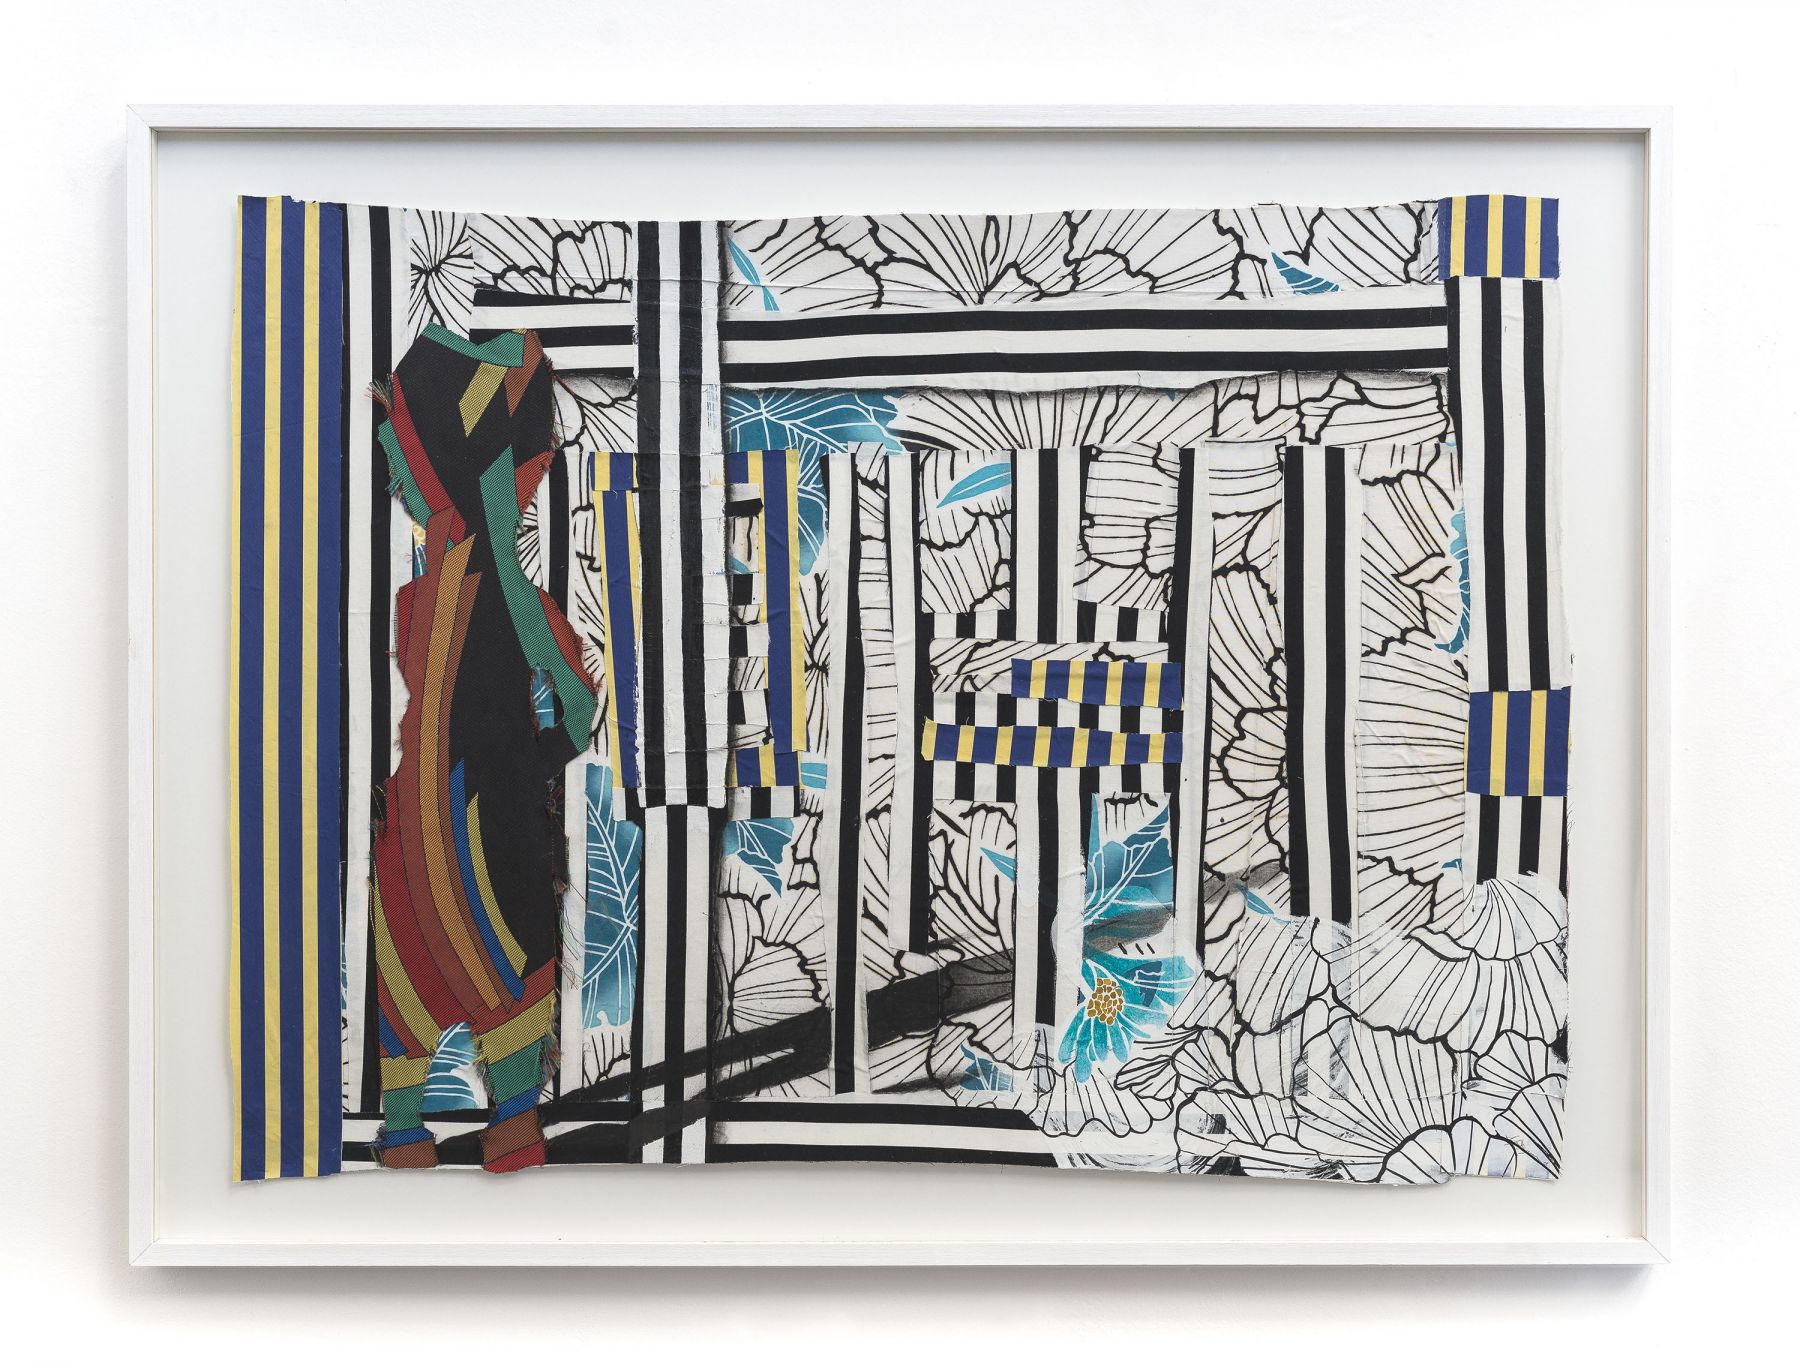 a textile contemporary art by Sanford Biggers available for purchase